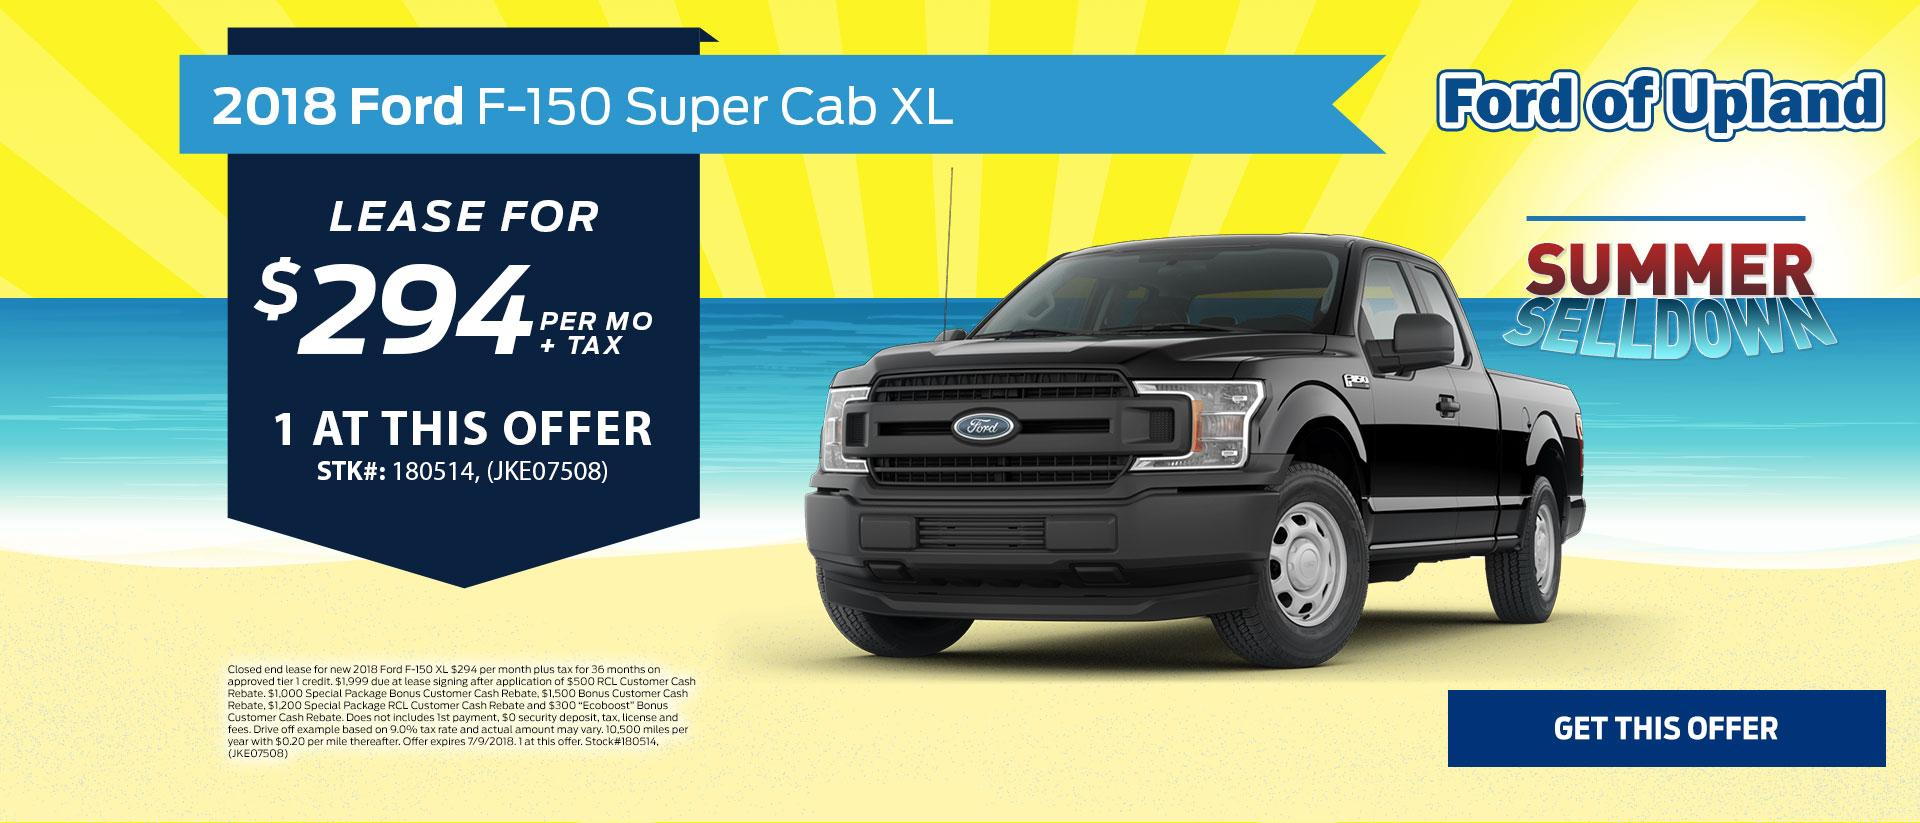 2018 F-150 Lease Offer